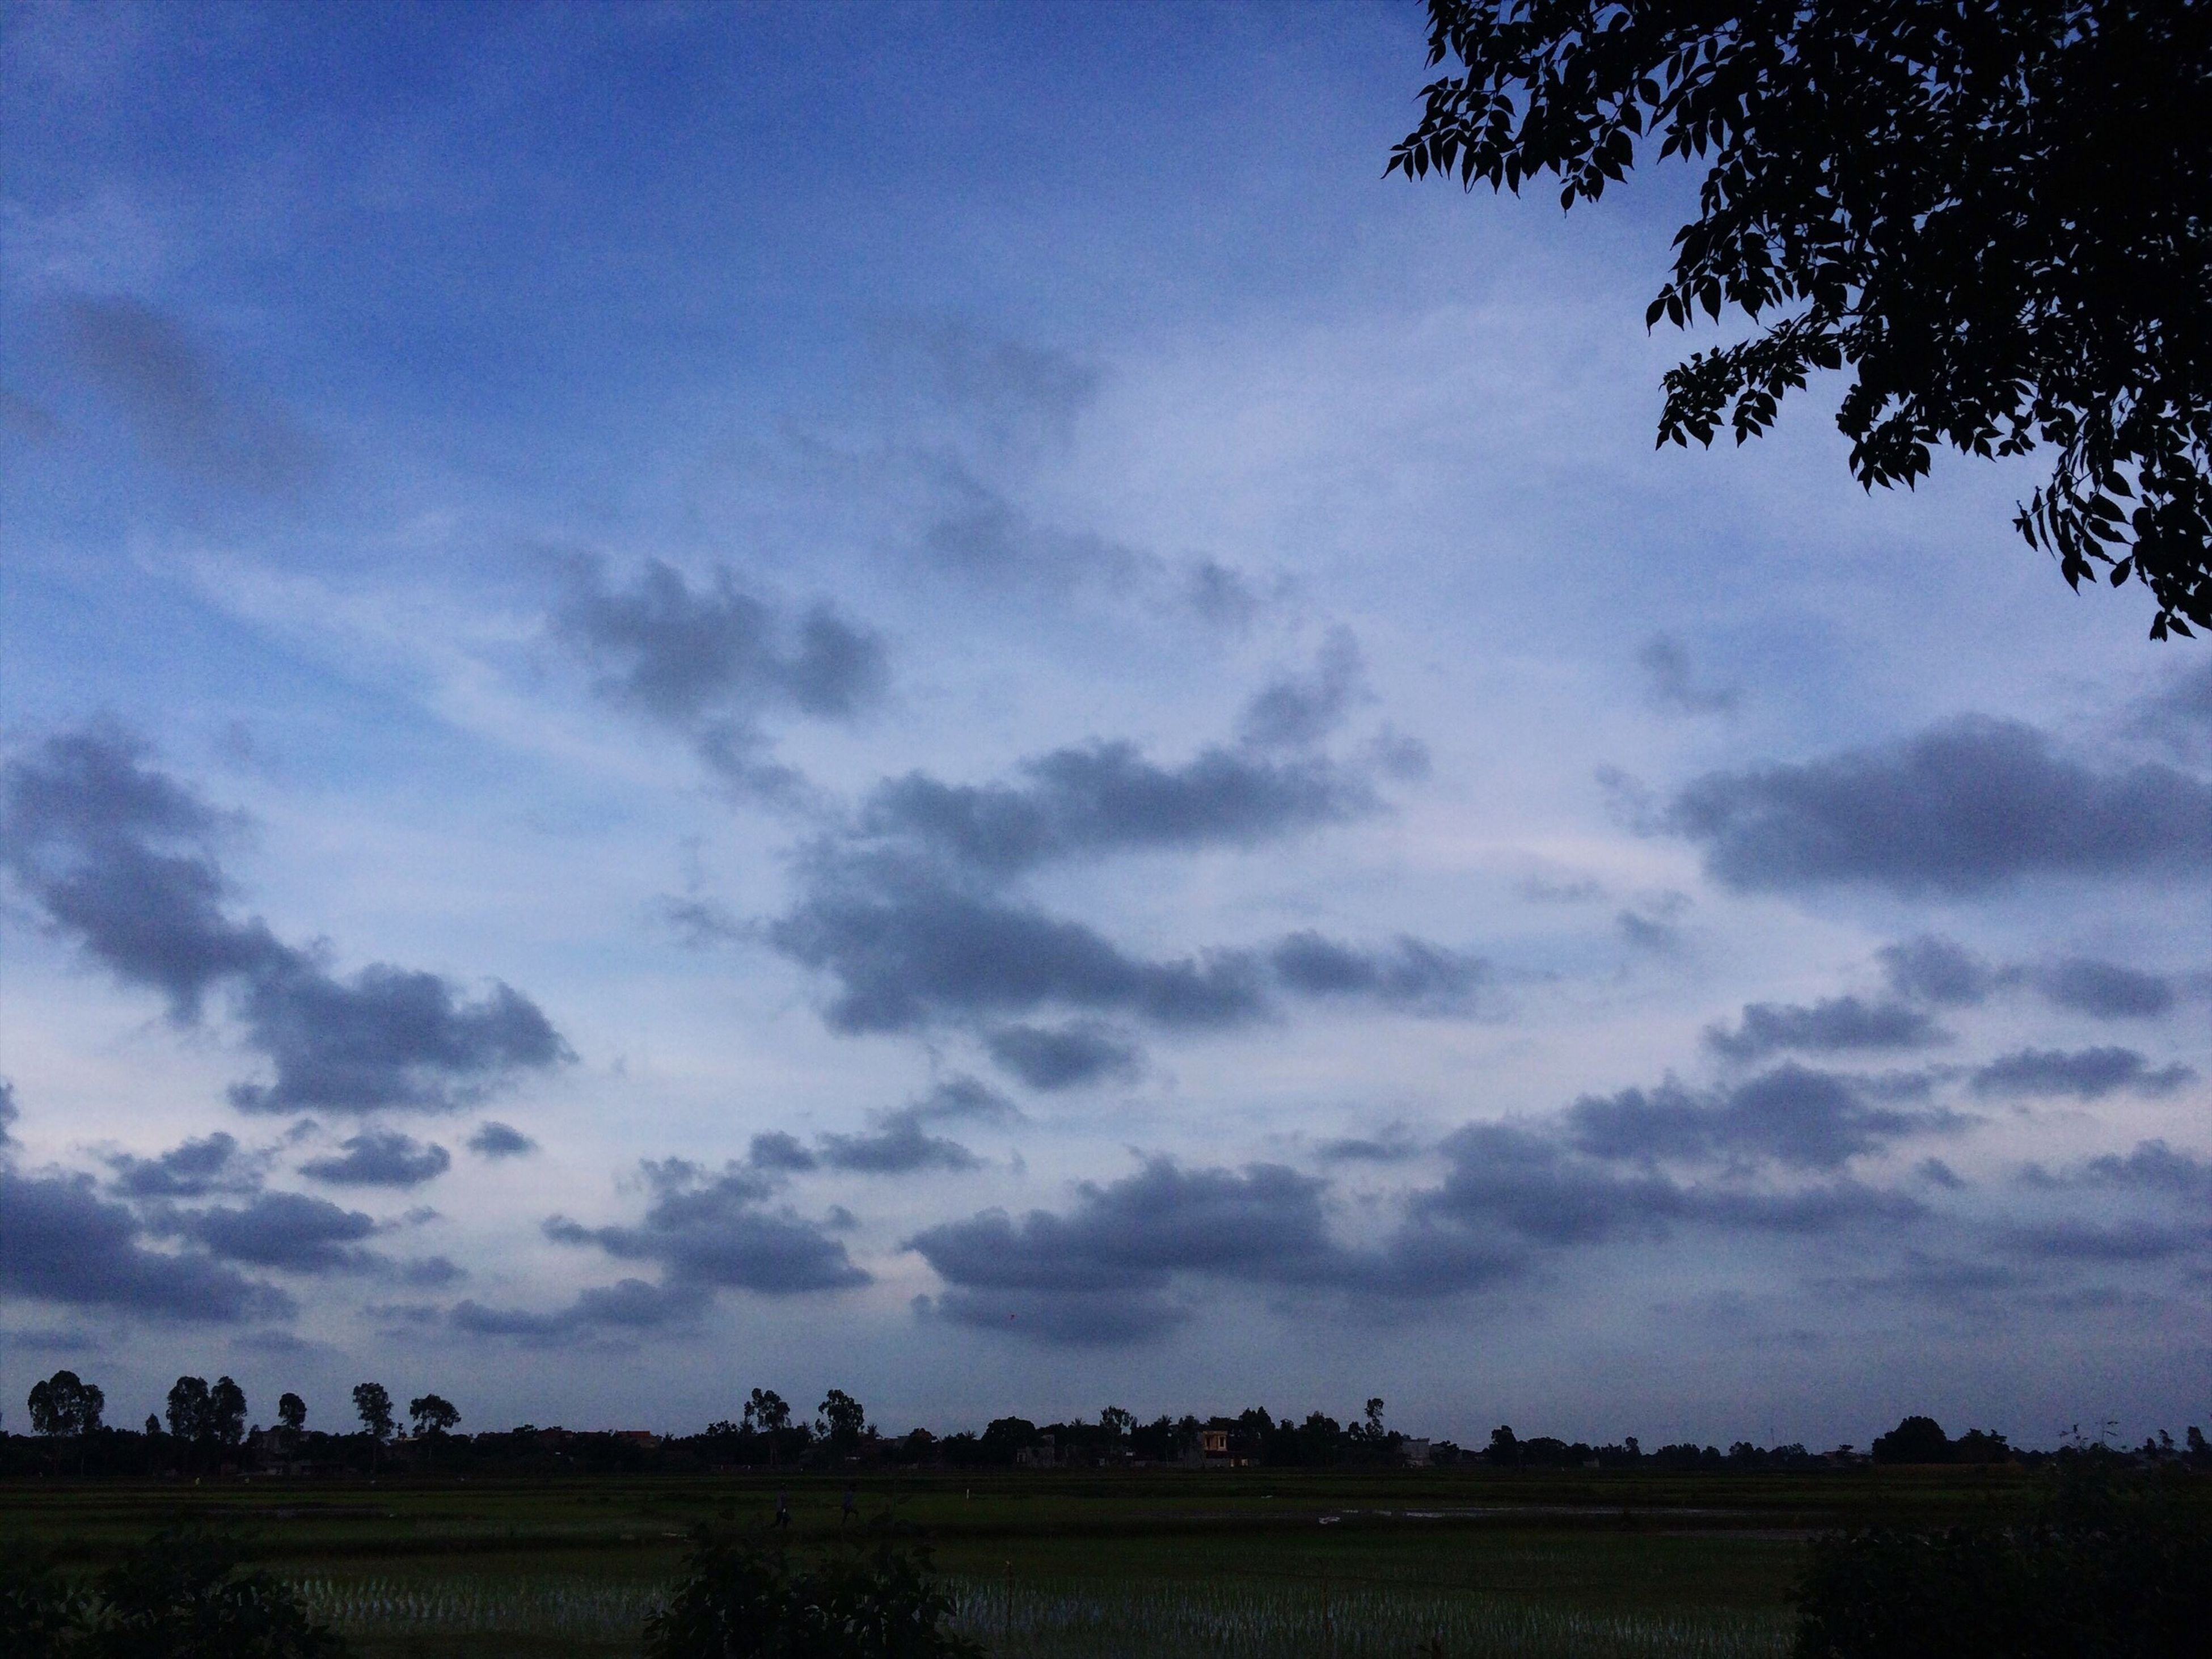 sky, landscape, nature, cloud - sky, beauty in nature, tree, field, scenics, tranquil scene, tranquility, day, no people, outdoors, growth